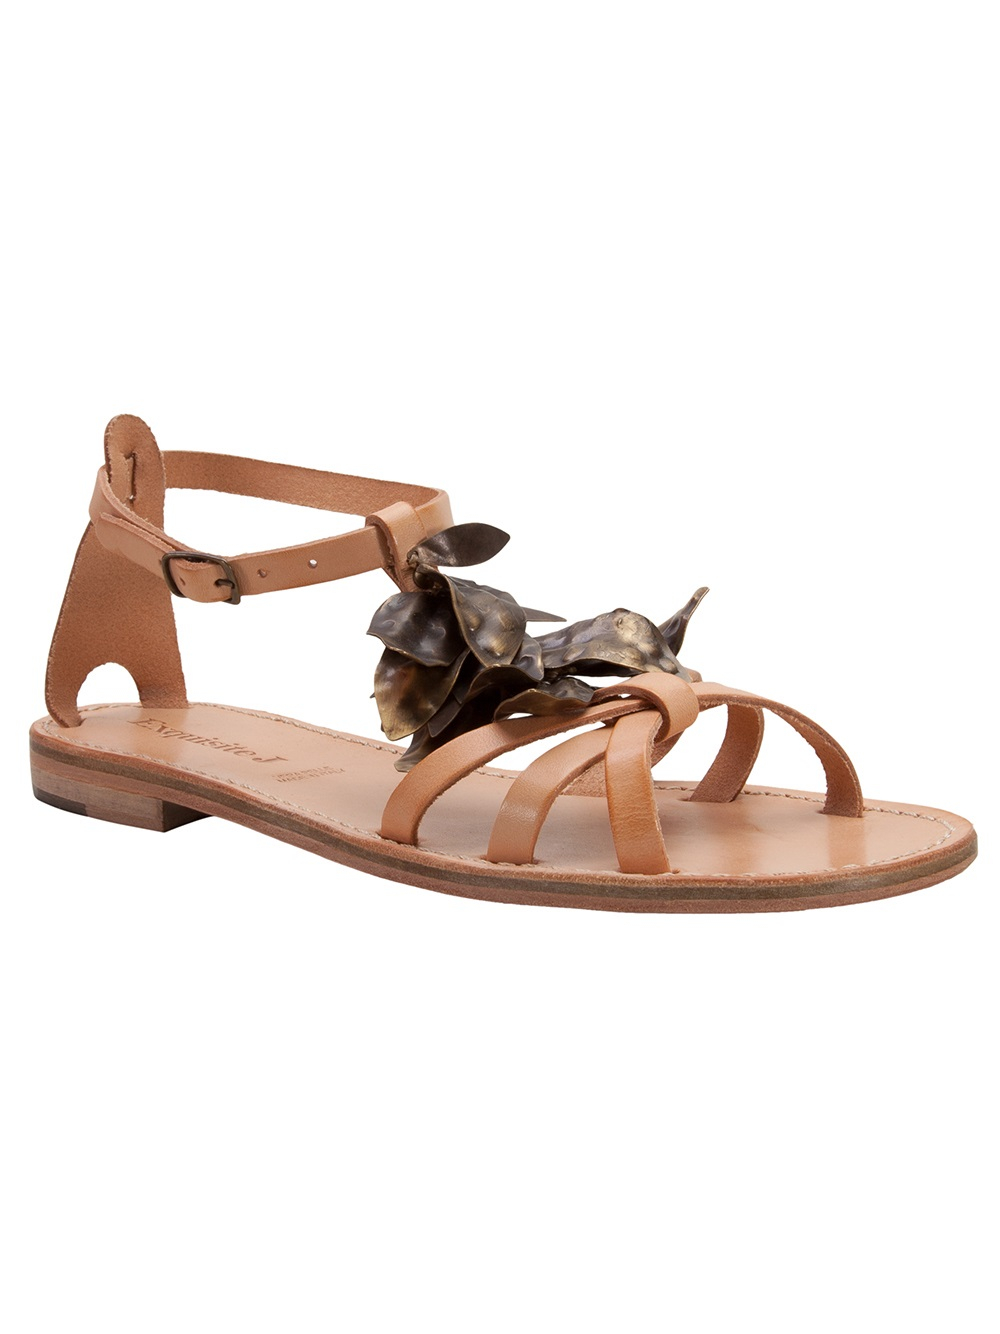 Lyst Exquisite J Strappy Sandal In Brown